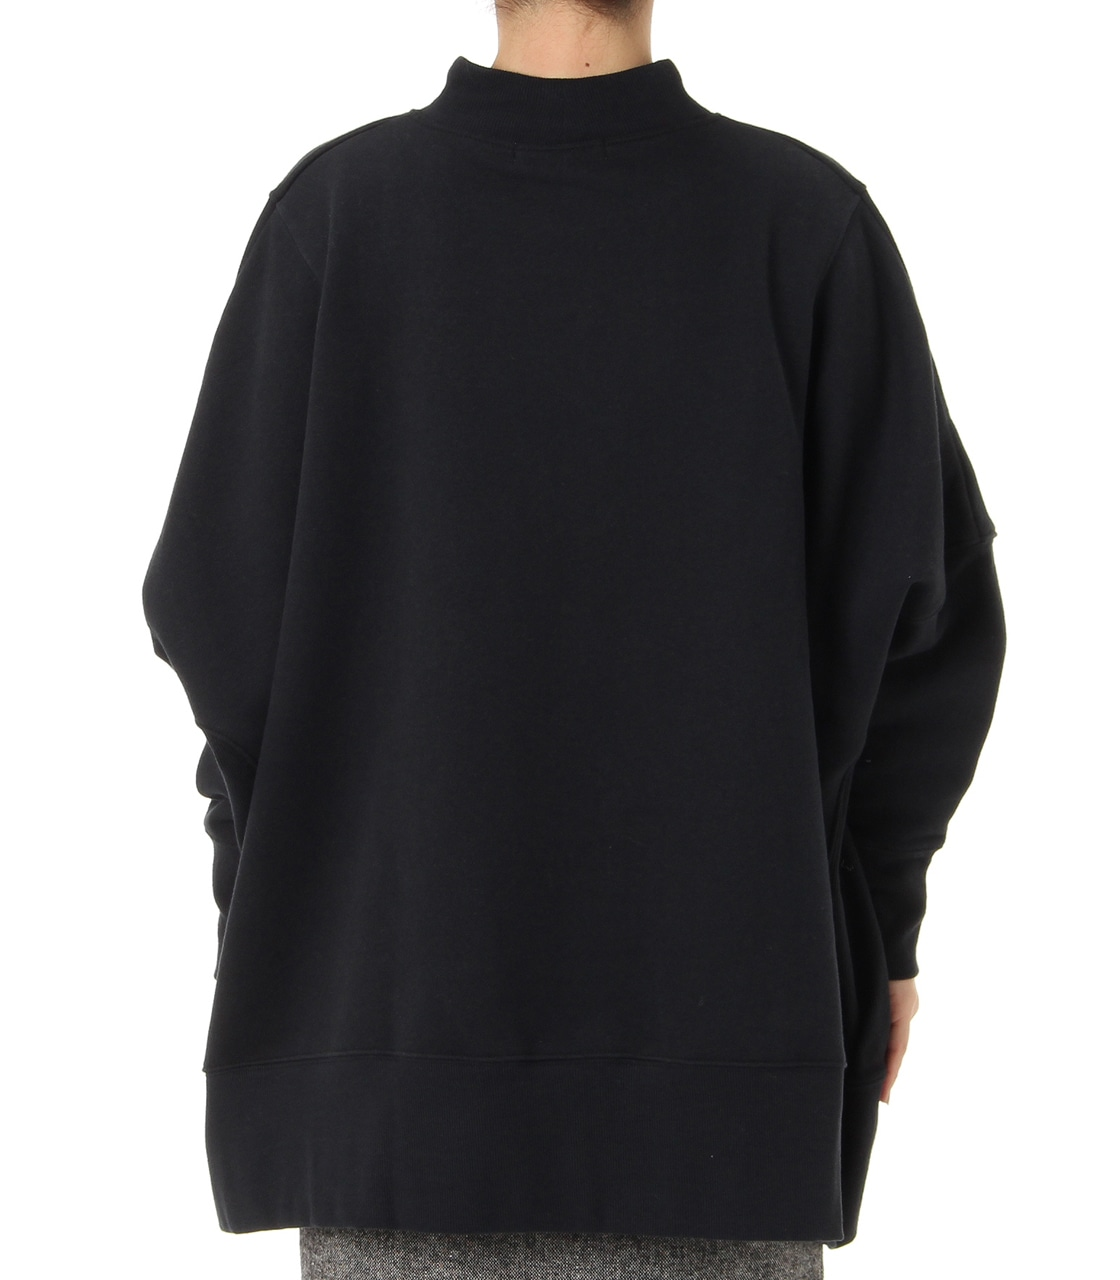 【AZUL BY MOUSSY】変形ドルマン裏毛チュニック 詳細画像 BLK 2